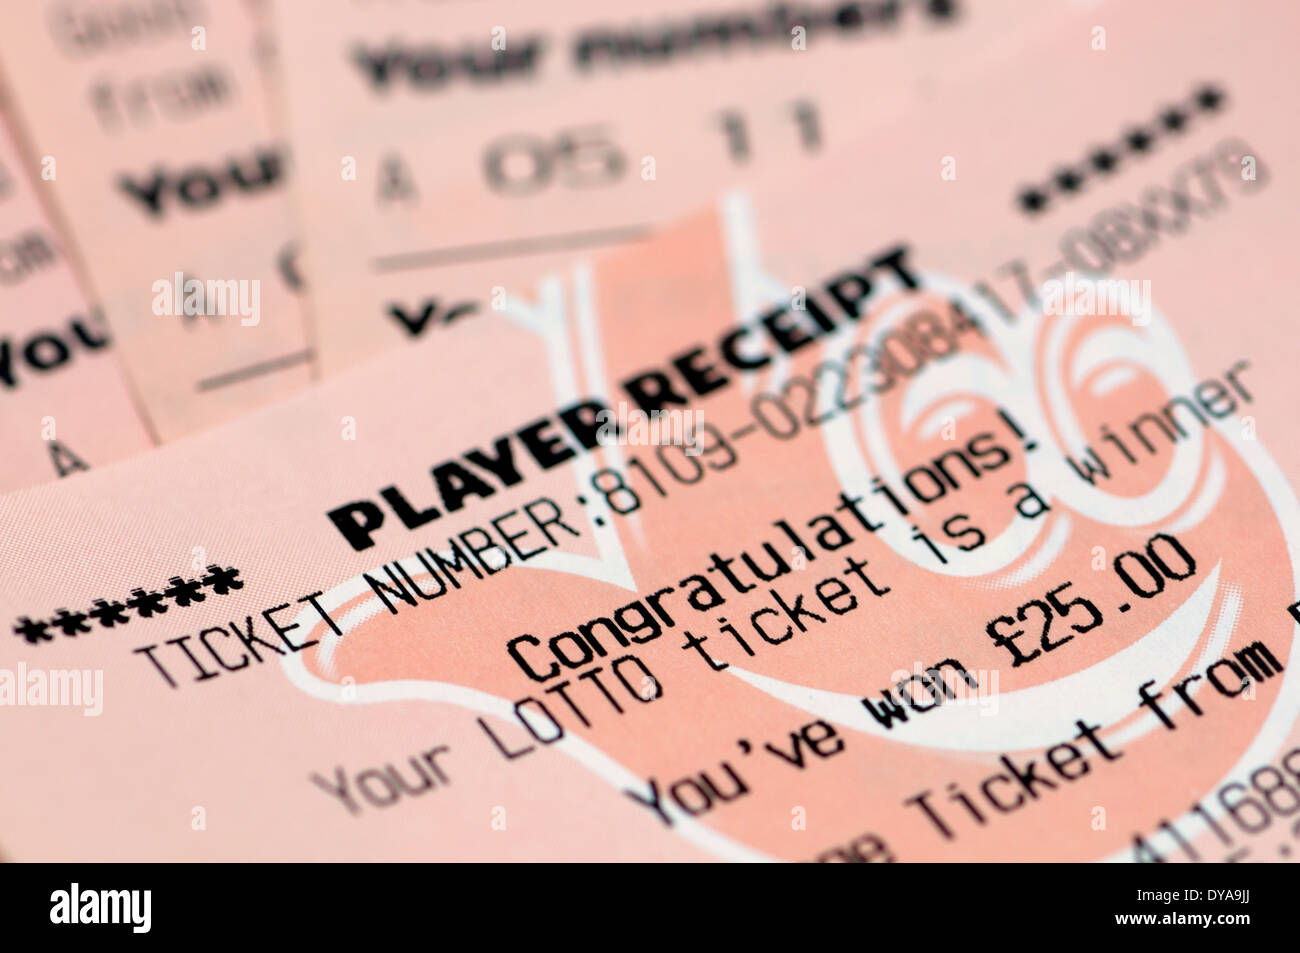 Winning Lottery Ticket Stock Photos & Winning Lottery Ticket Stock ...